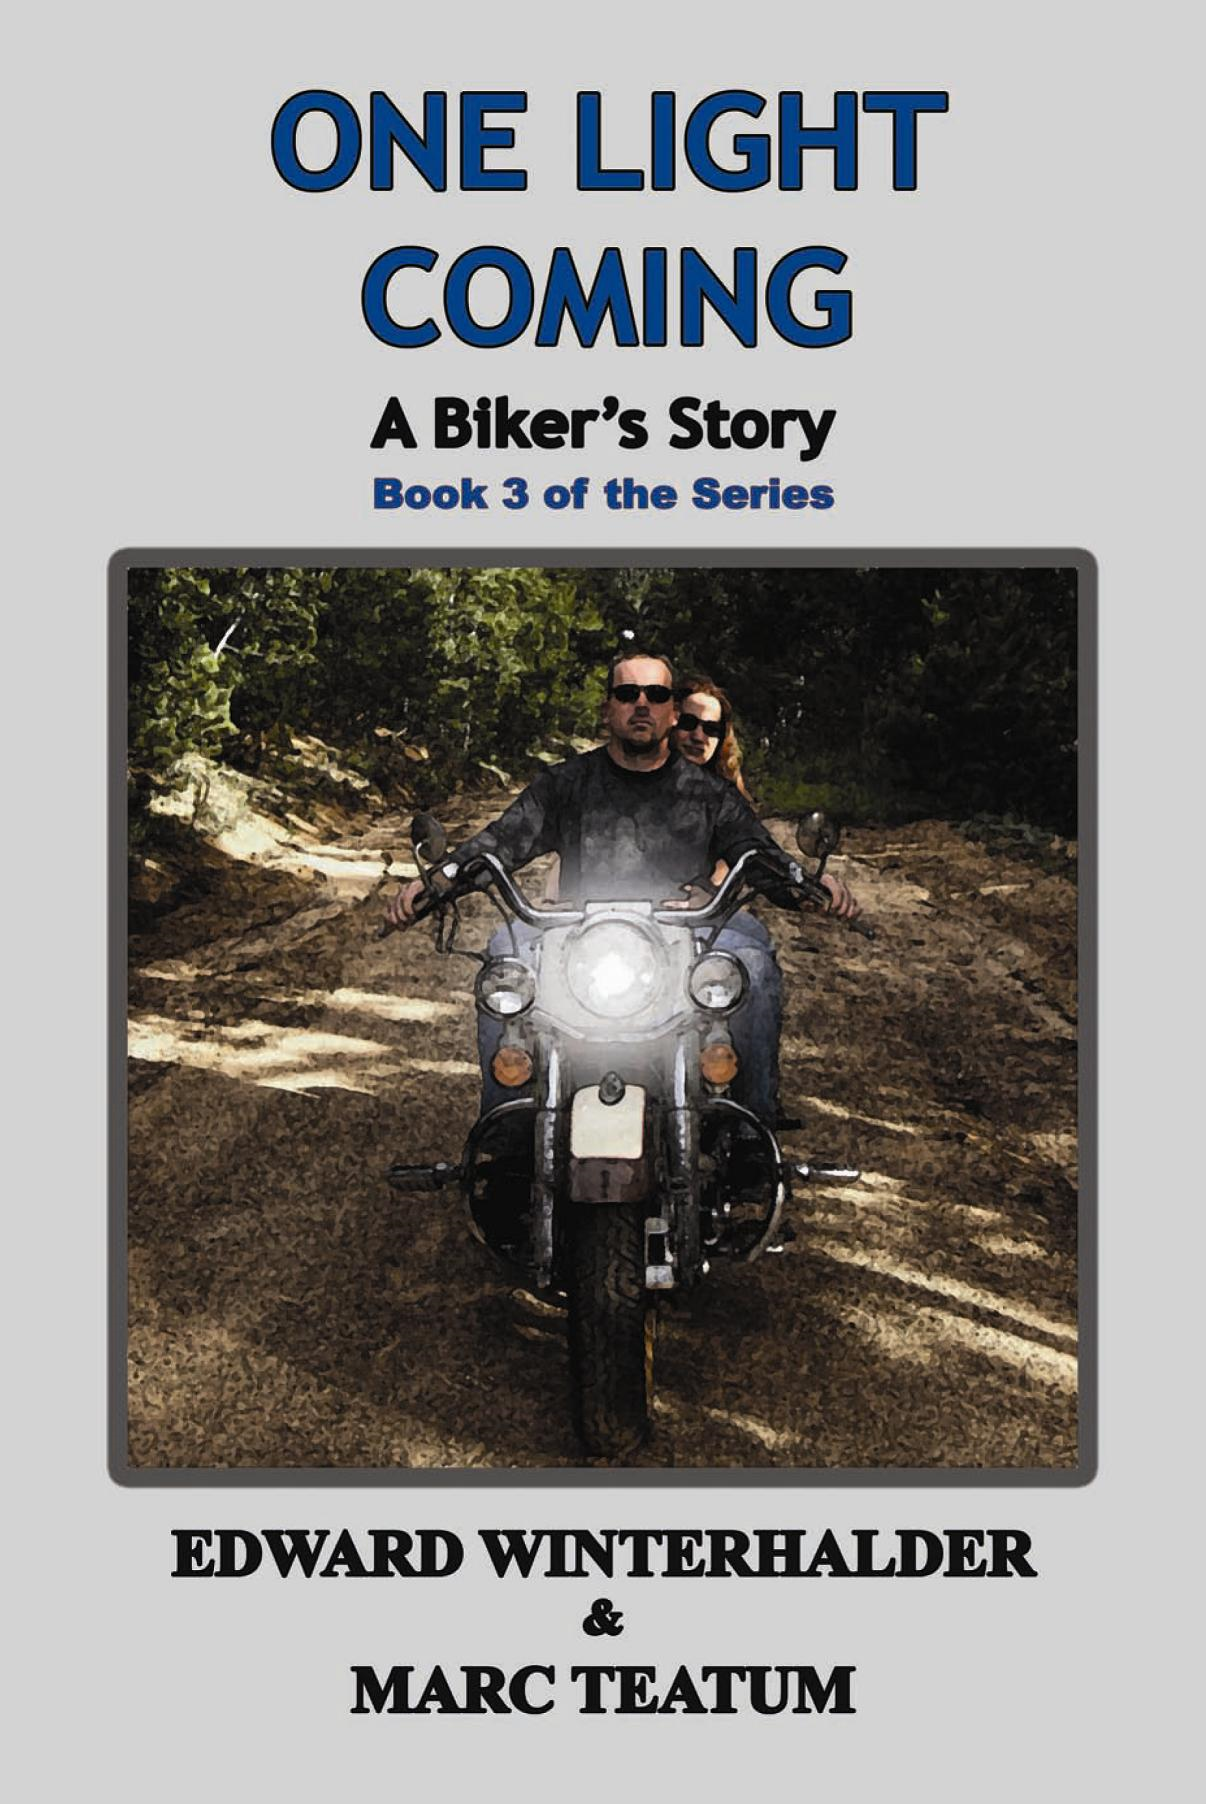 One Light Coming: A Biker's Story